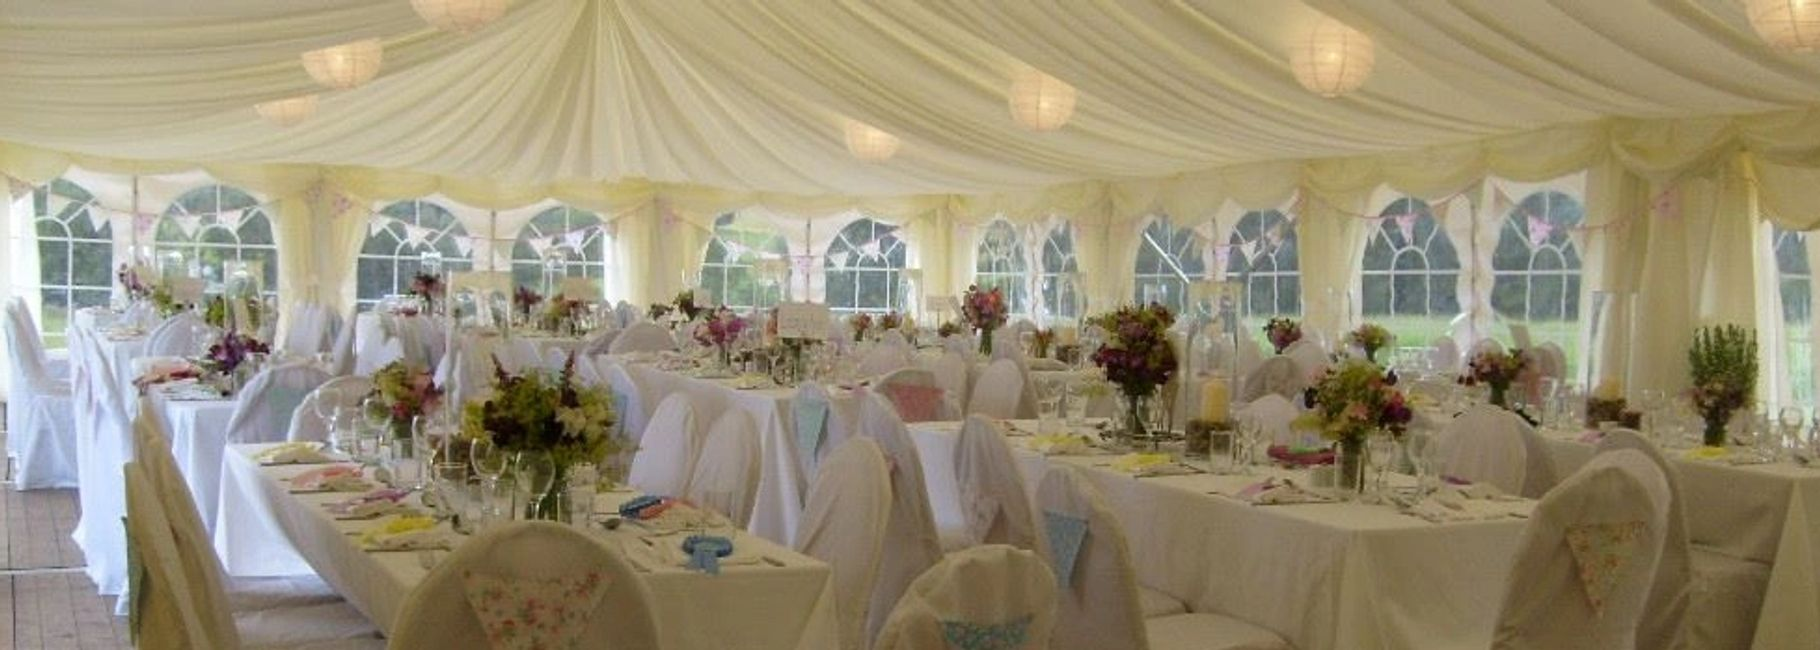 Scotland Perthshire wedding catering marquee gourlay events